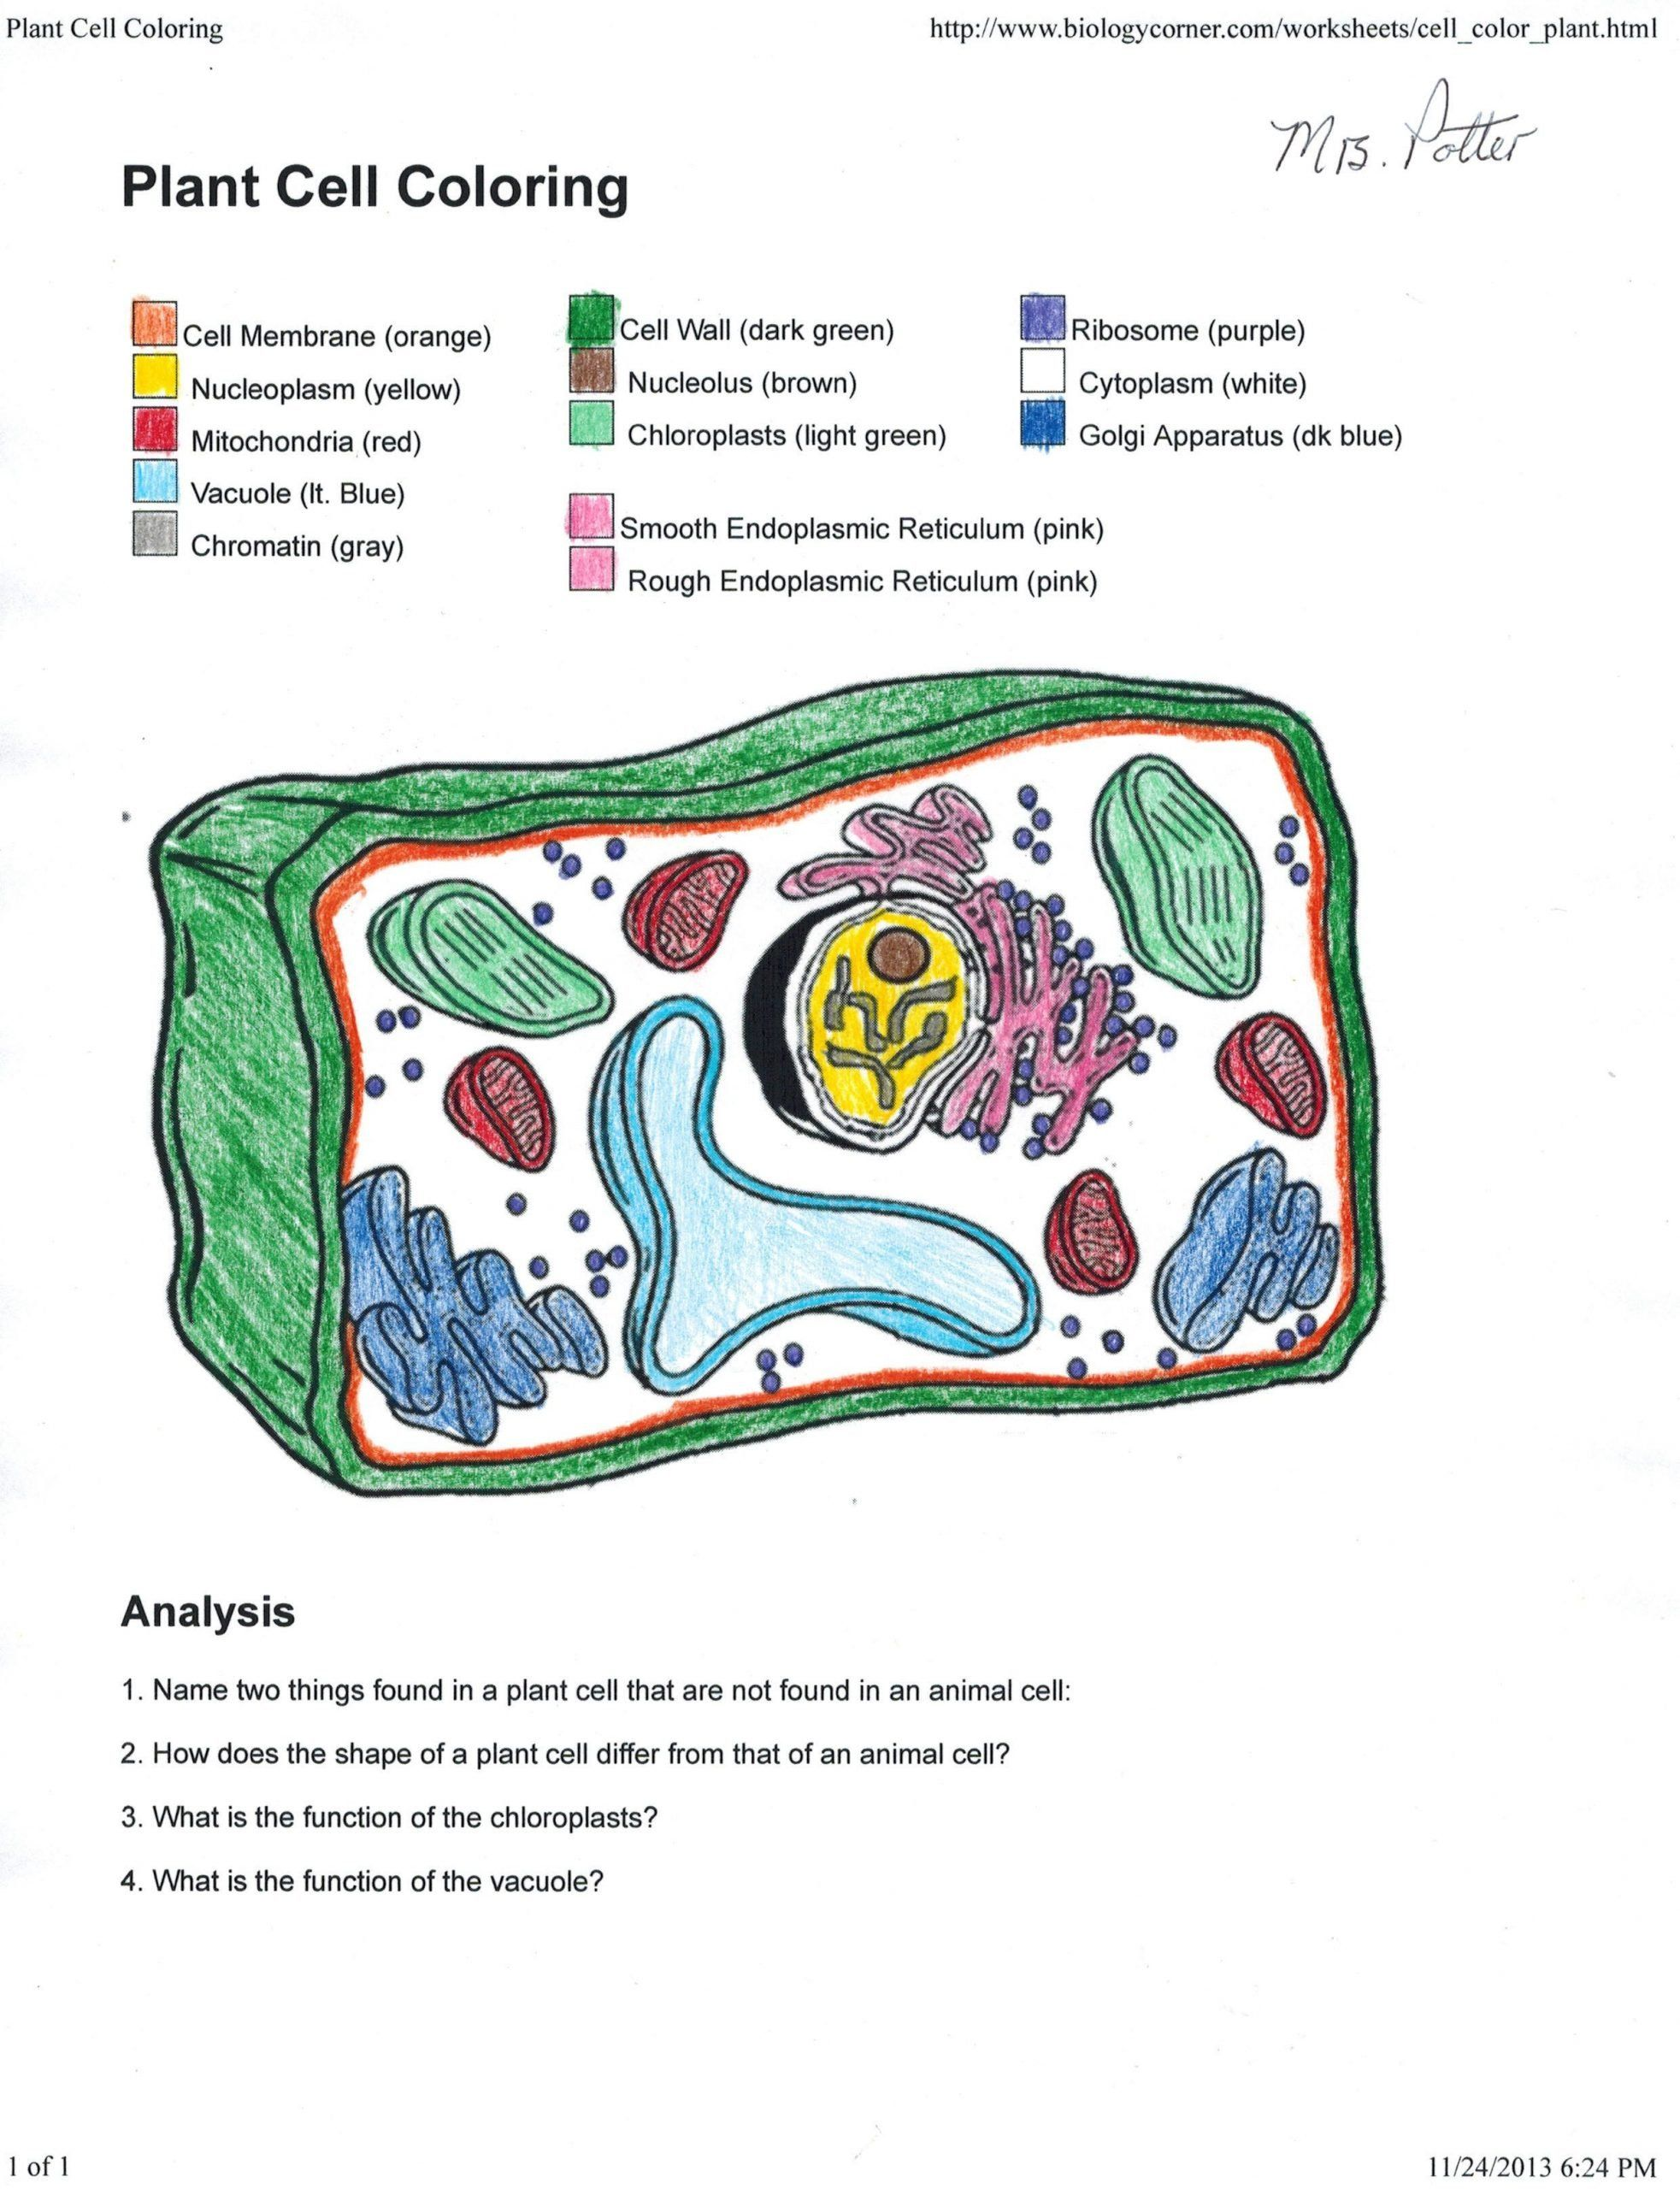 Plant Cell Coloring Sheet Answers Plant Cell Coloring Key 0 Plant Cell Coloring Key In 2020 Plant Cell Animal Cells Worksheet Cell Membrane Coloring Worksheet